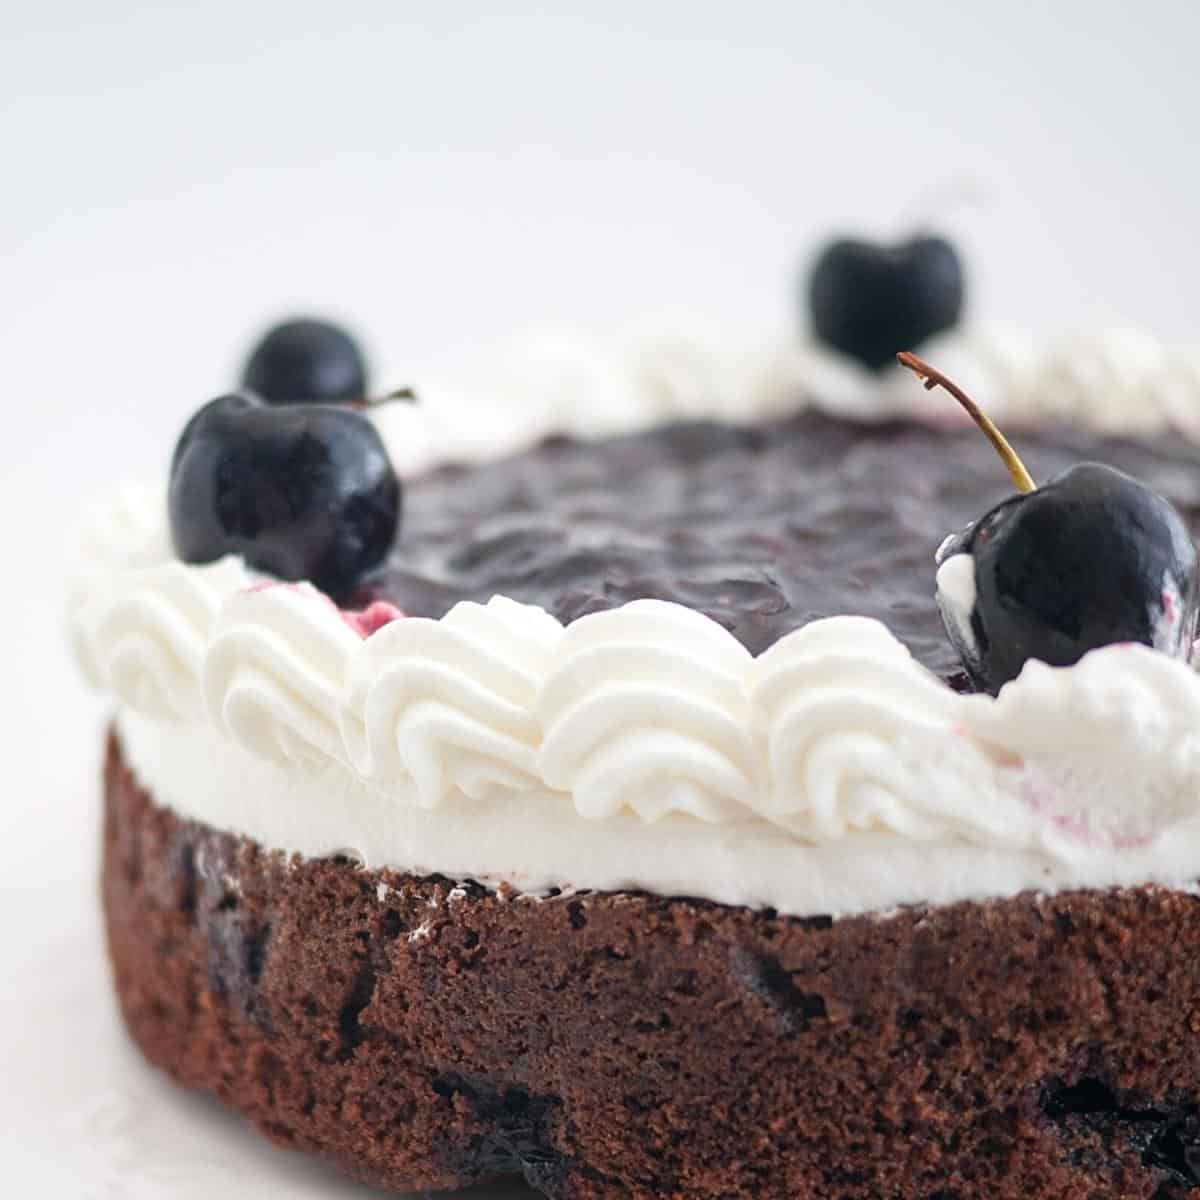 A layer of chocolate cake with fresh cherries.